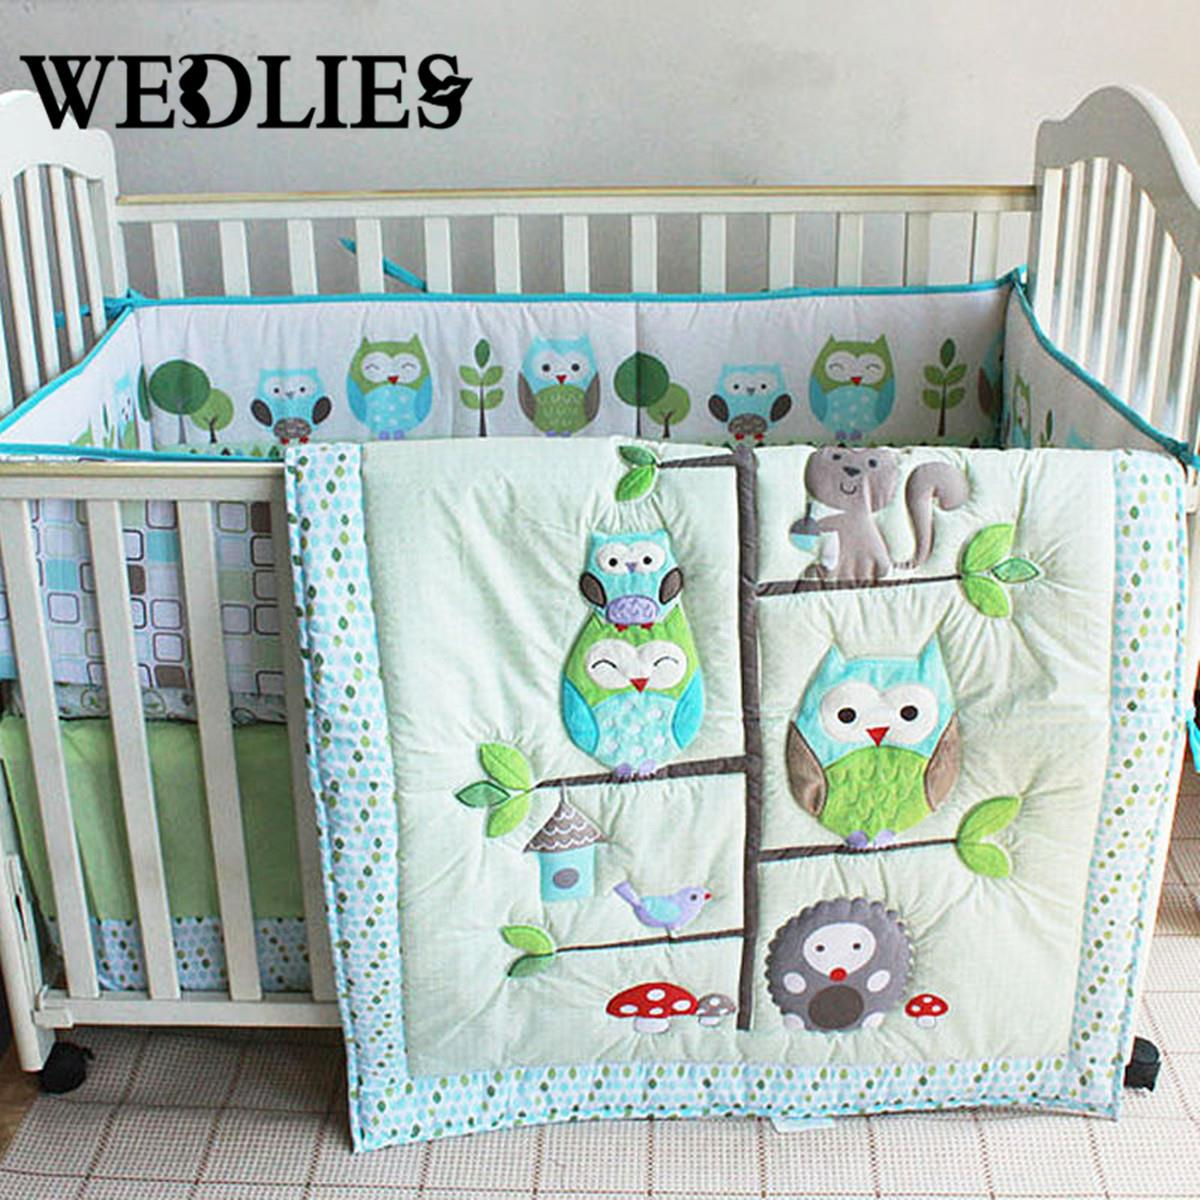 7pcs Cotton Baby Bedding Set Owl Family Nursery Cartoon Bed with Quilt Bumper Sheet Fitted Cover Dust Ruffle for Boys Girls(China (Mainland))